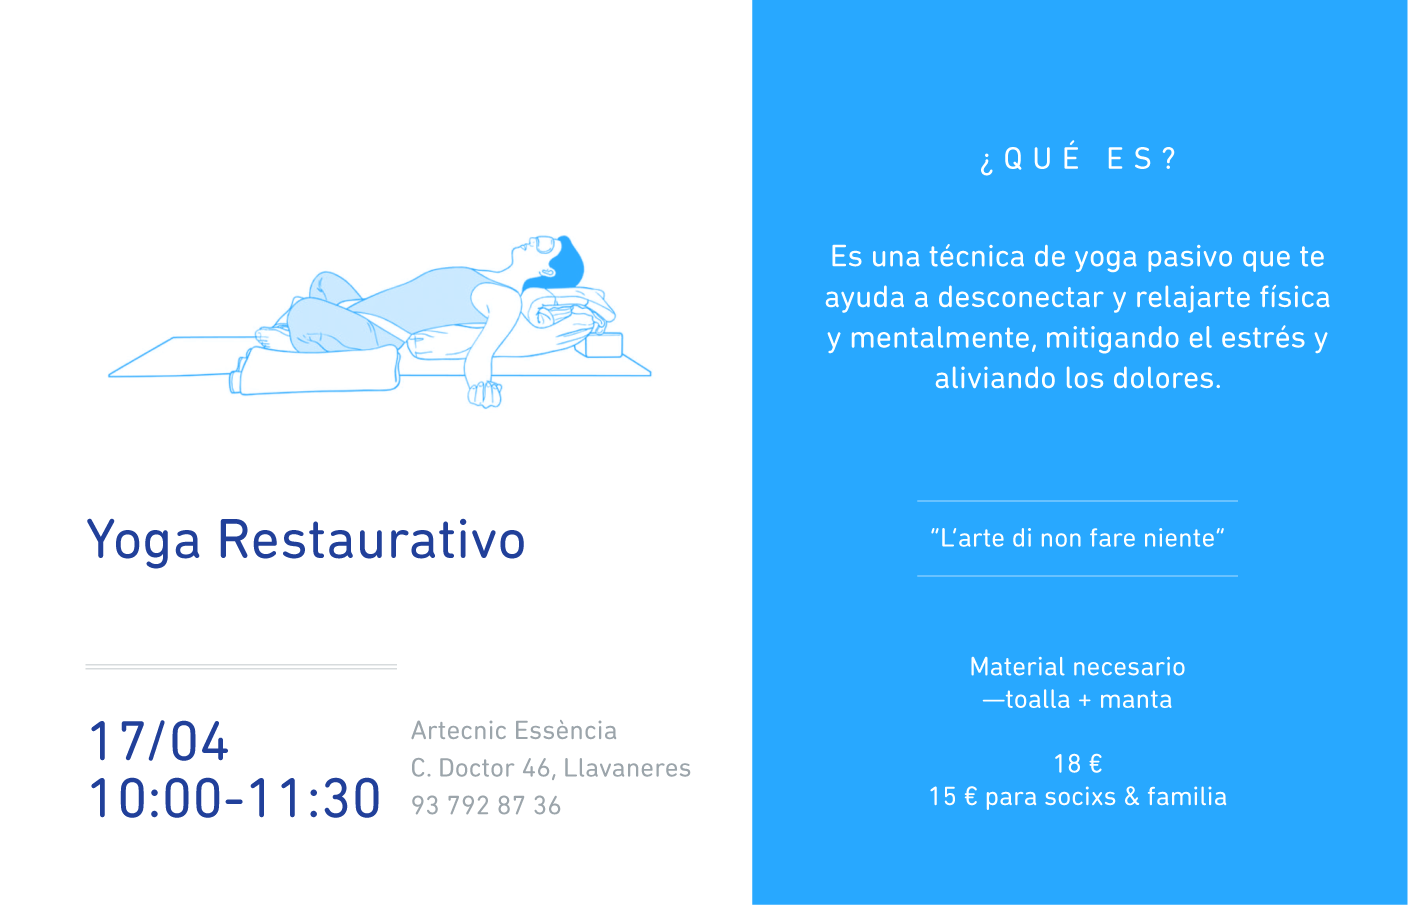 YogaRestaurativo